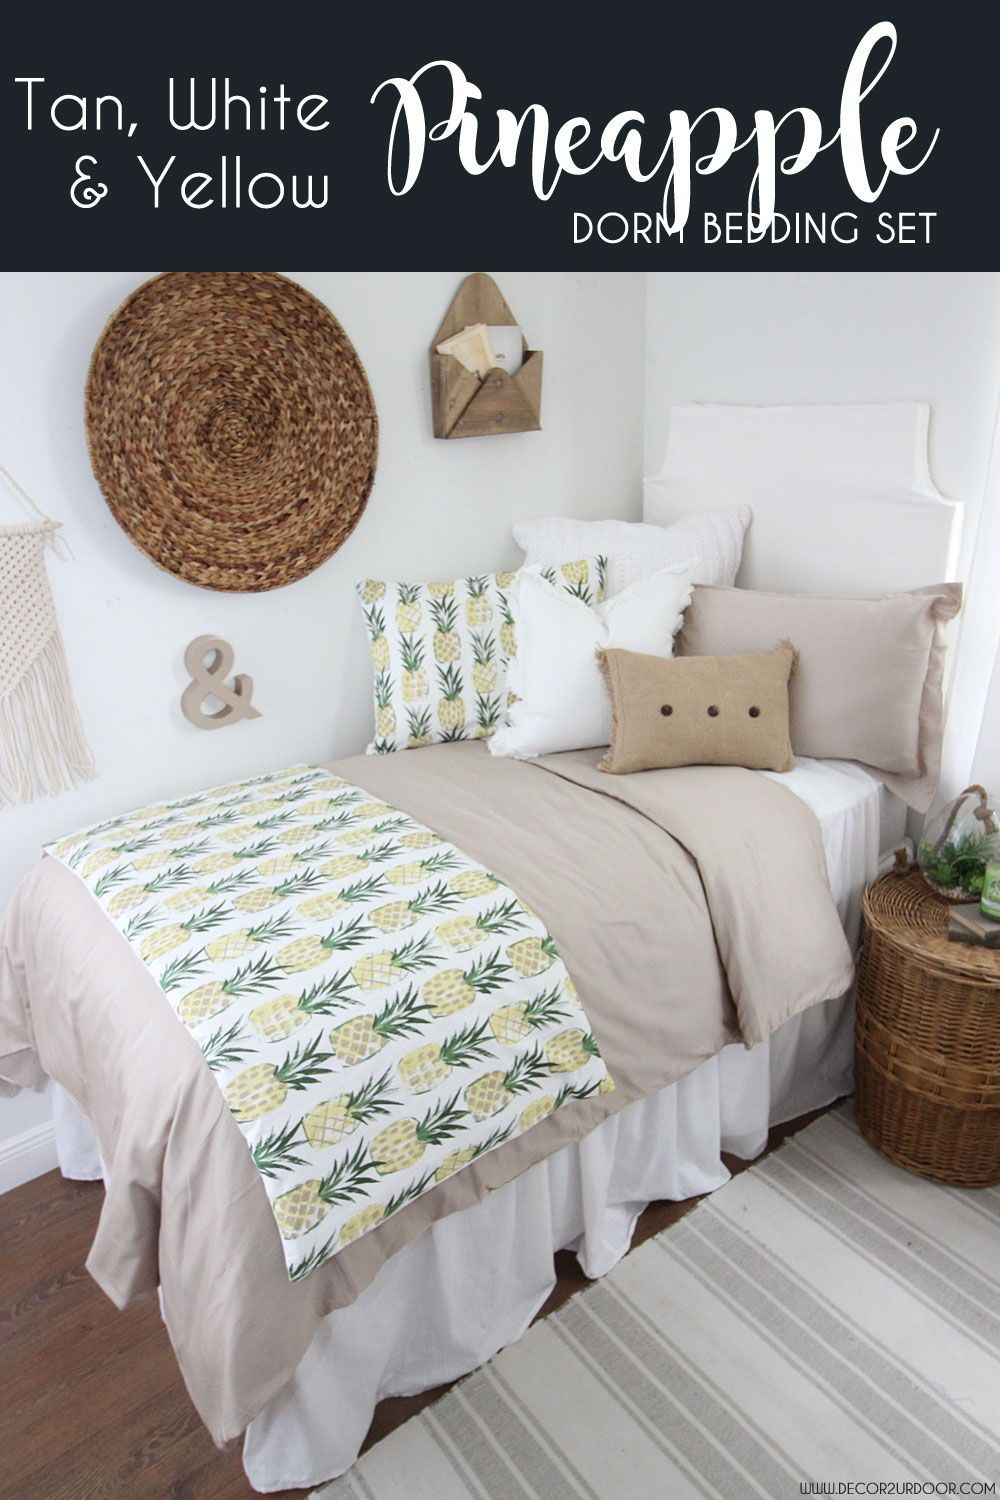 Pretty Pinele Dorm Decor This Tan White And Yellow Bedding Collection